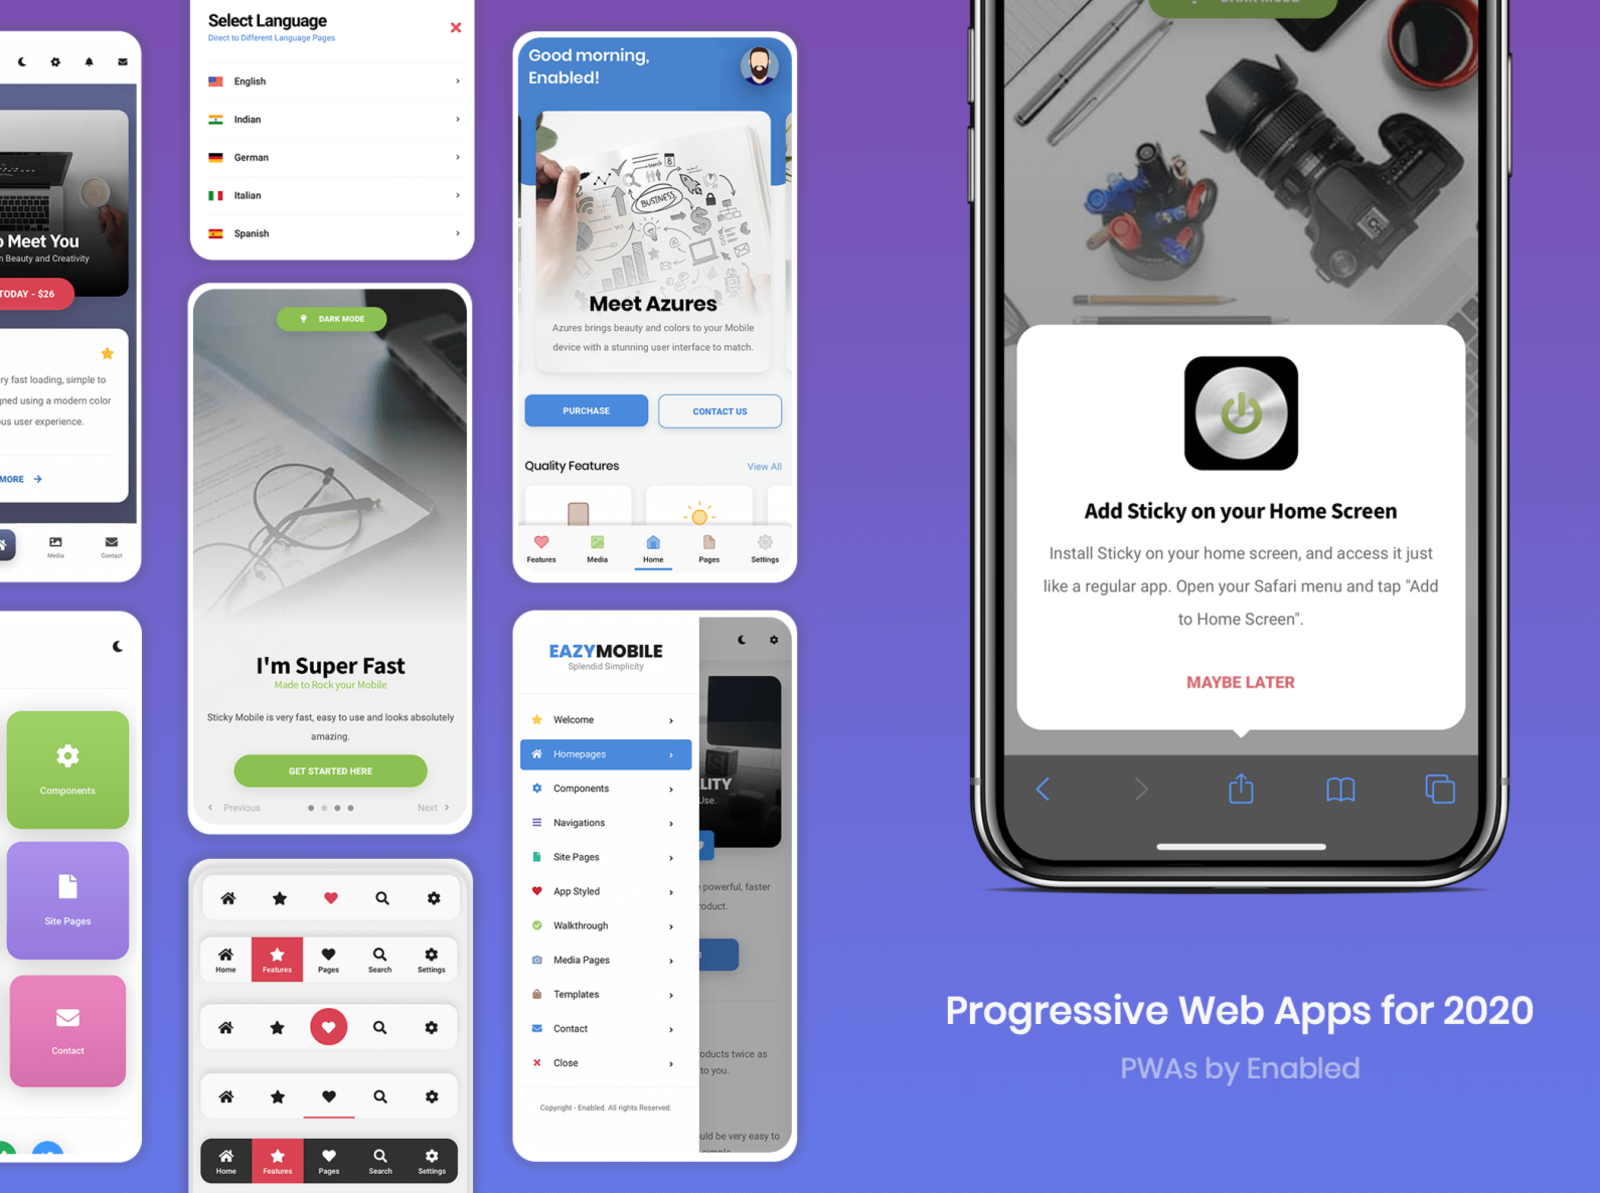 Pwa Best Progressive Web Apps For 2020 Collection By Enabled On Dribbble